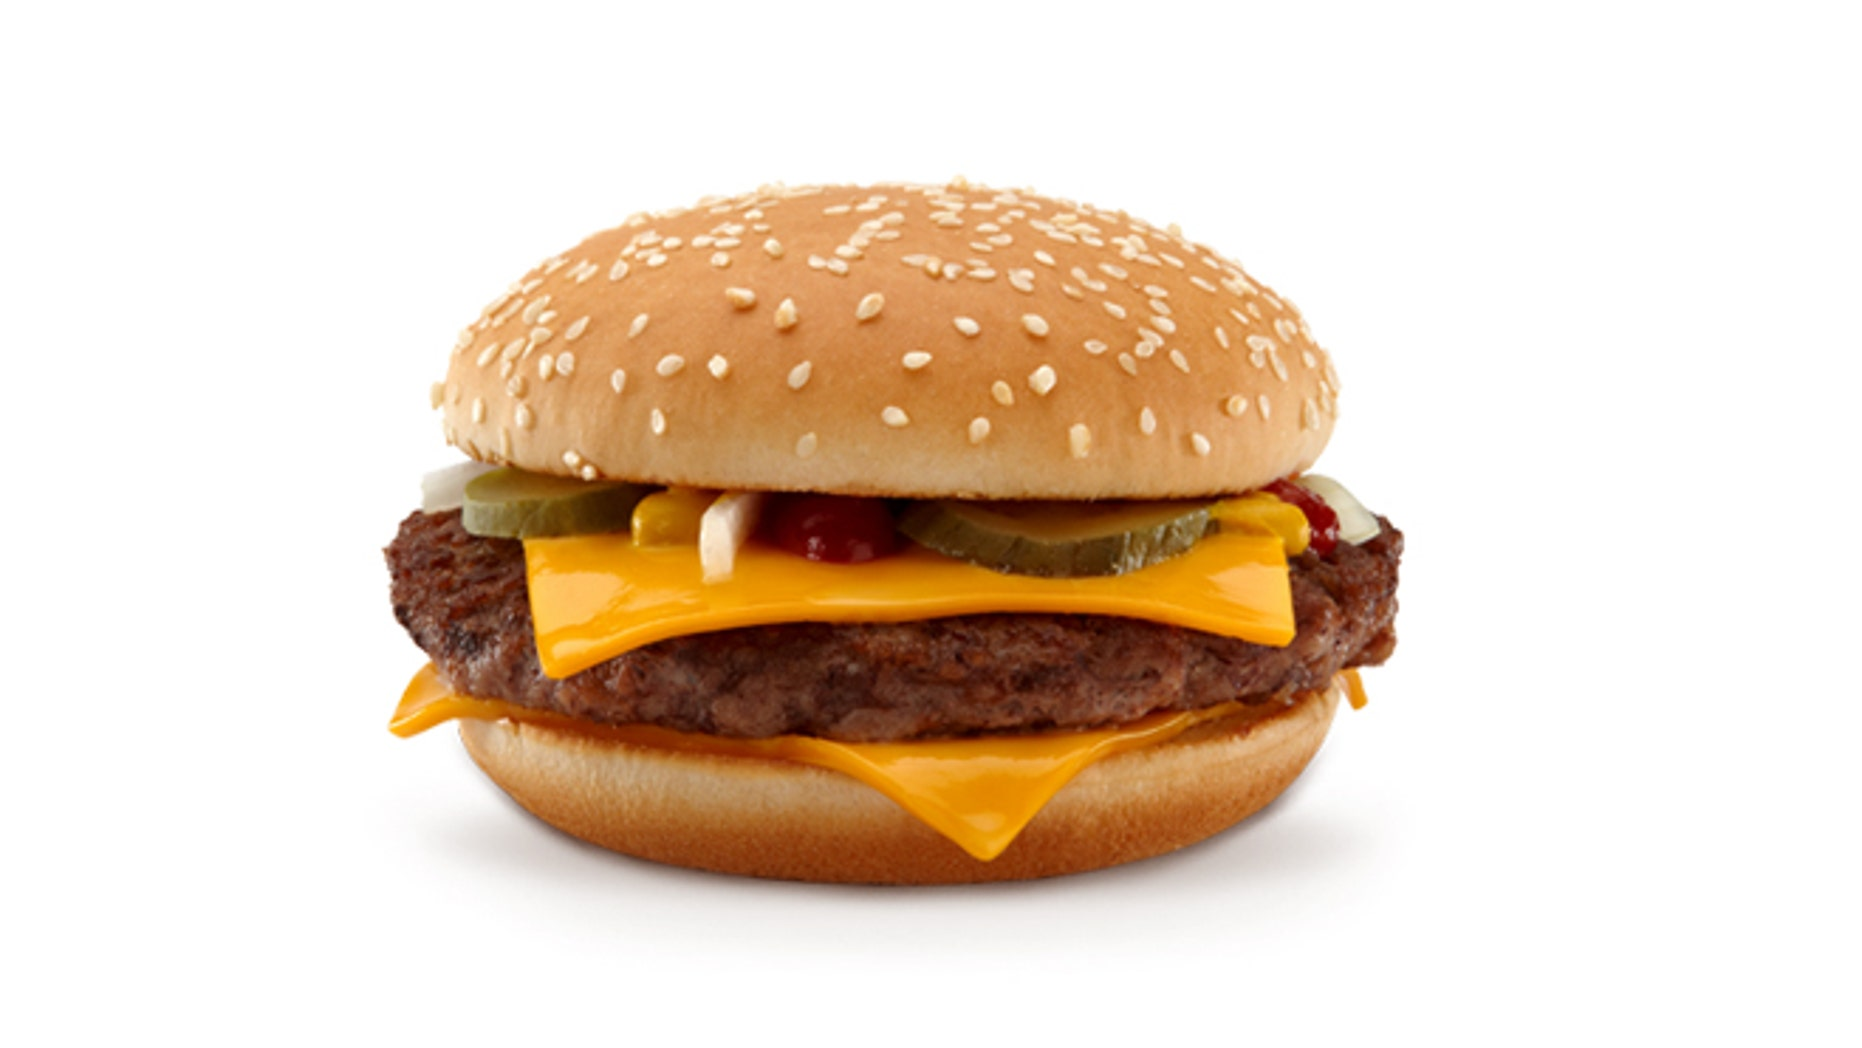 A beefier quarter pounder burger is on the way.